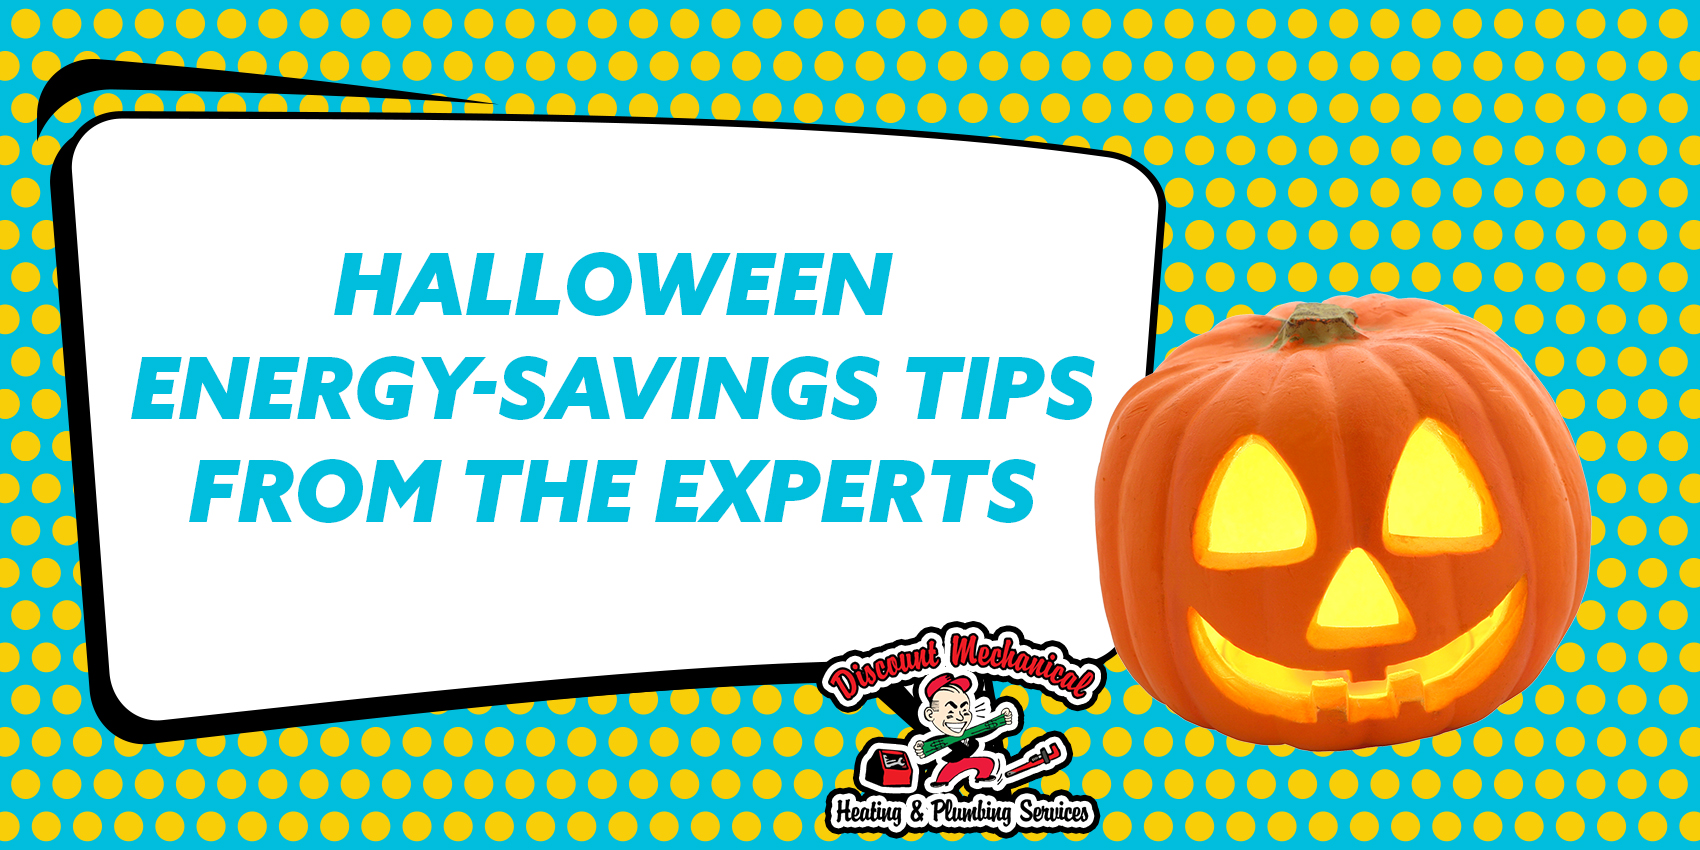 Halloween Energy-Savings Tips from the Experts